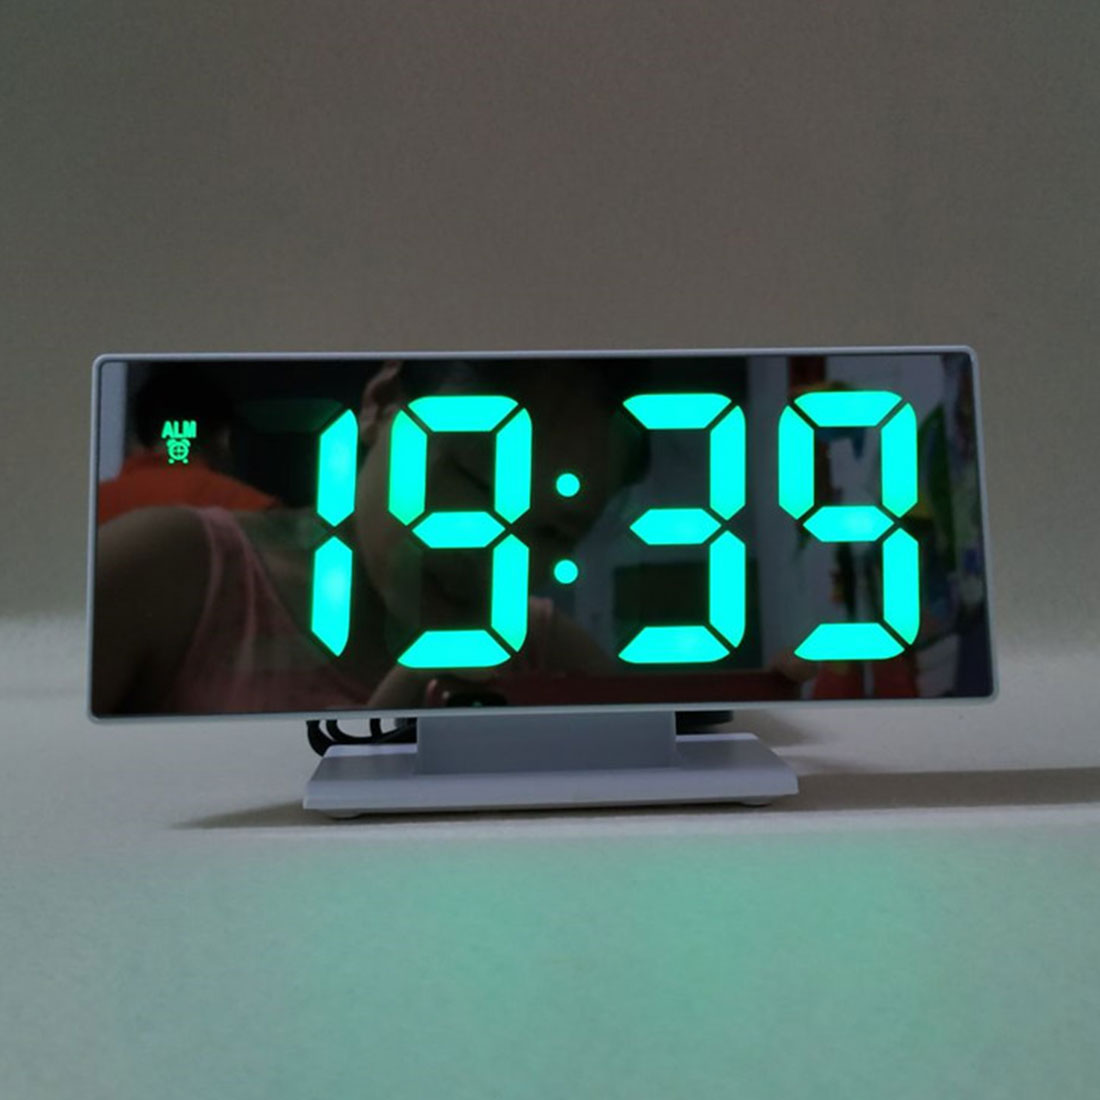 Digital Alarm Clock LED Mirror Clock Multifunction Snooze Display Time Night Led Table Desktop Office Home Bedroom Decoration